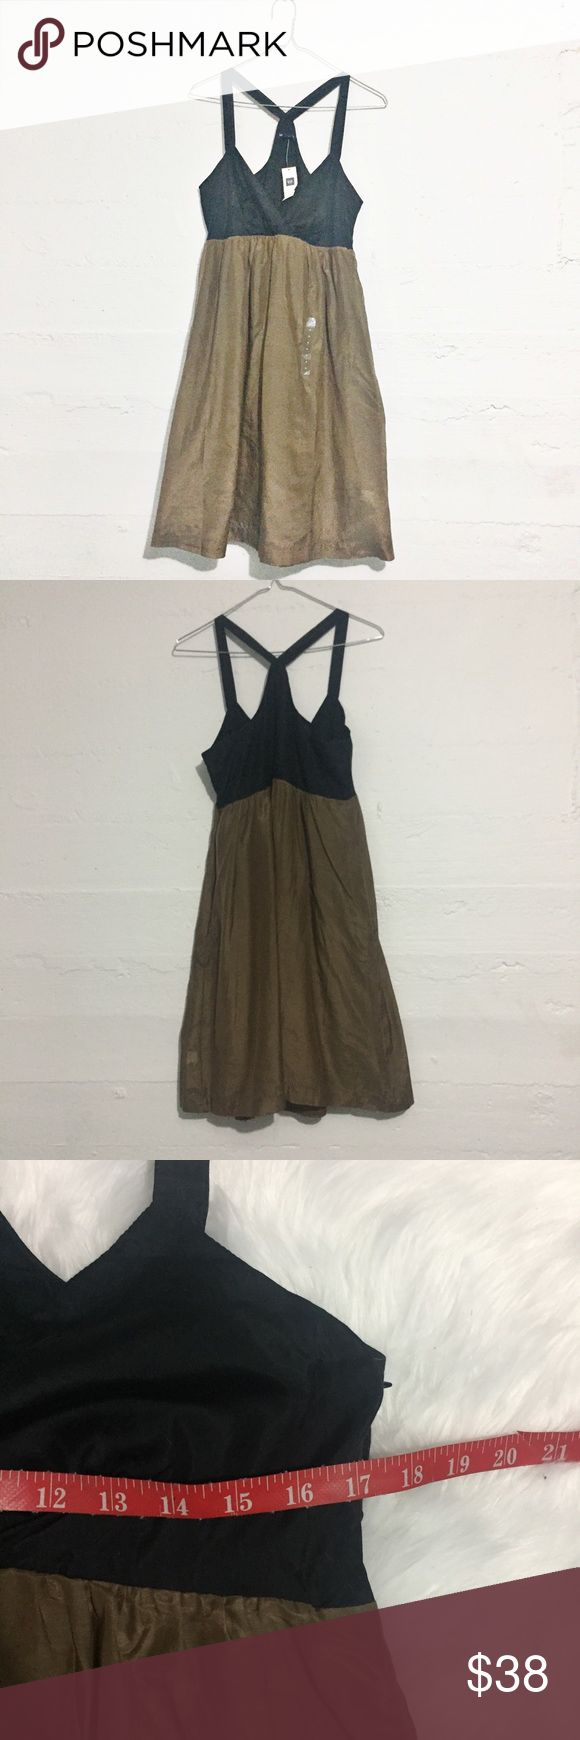 NWT The Gap Bronze & Black dress NWT The Gap Bronze & Black dress. Photographs cannot capture the shimmer to the brown-bronzey skirt of this dress. But it's gorgeous! Open to offers. No trades. GAP Dresses